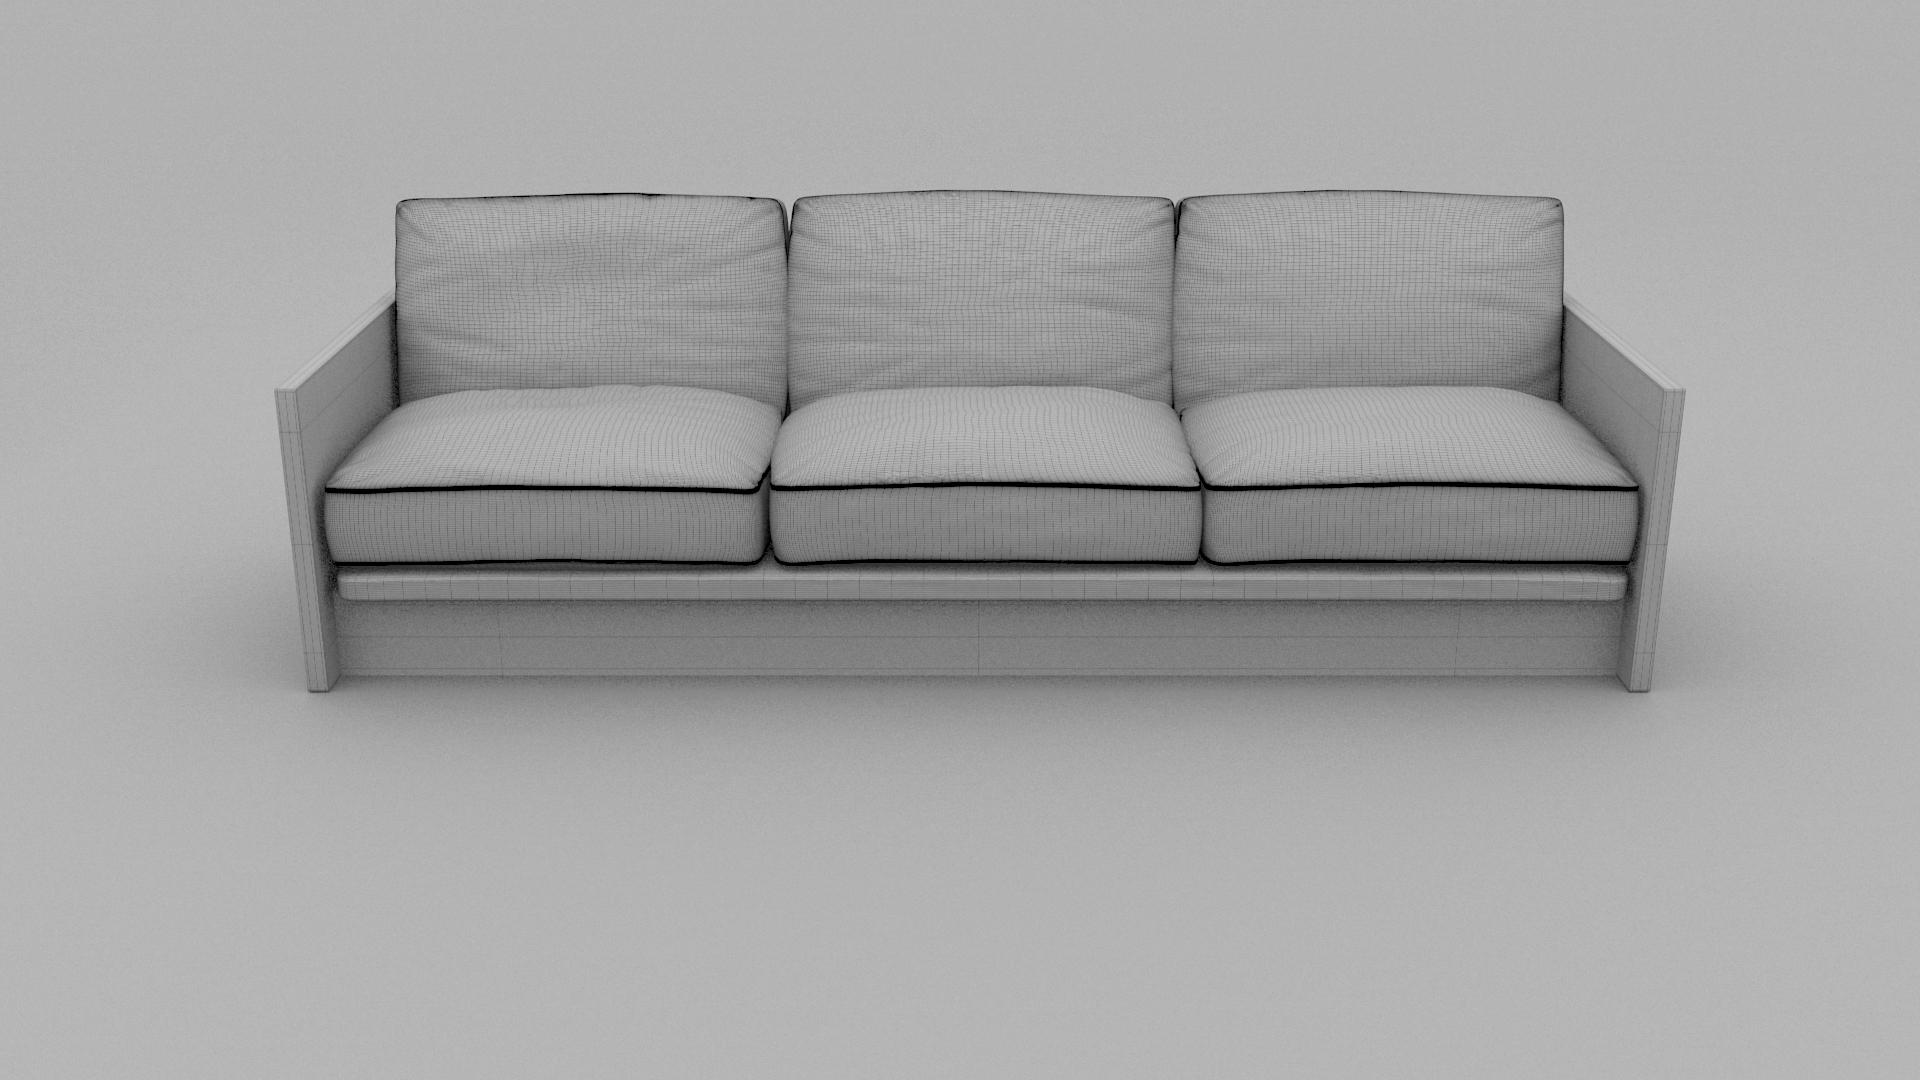 oliver sofa murphy bed system retro by dragosburian 3docean